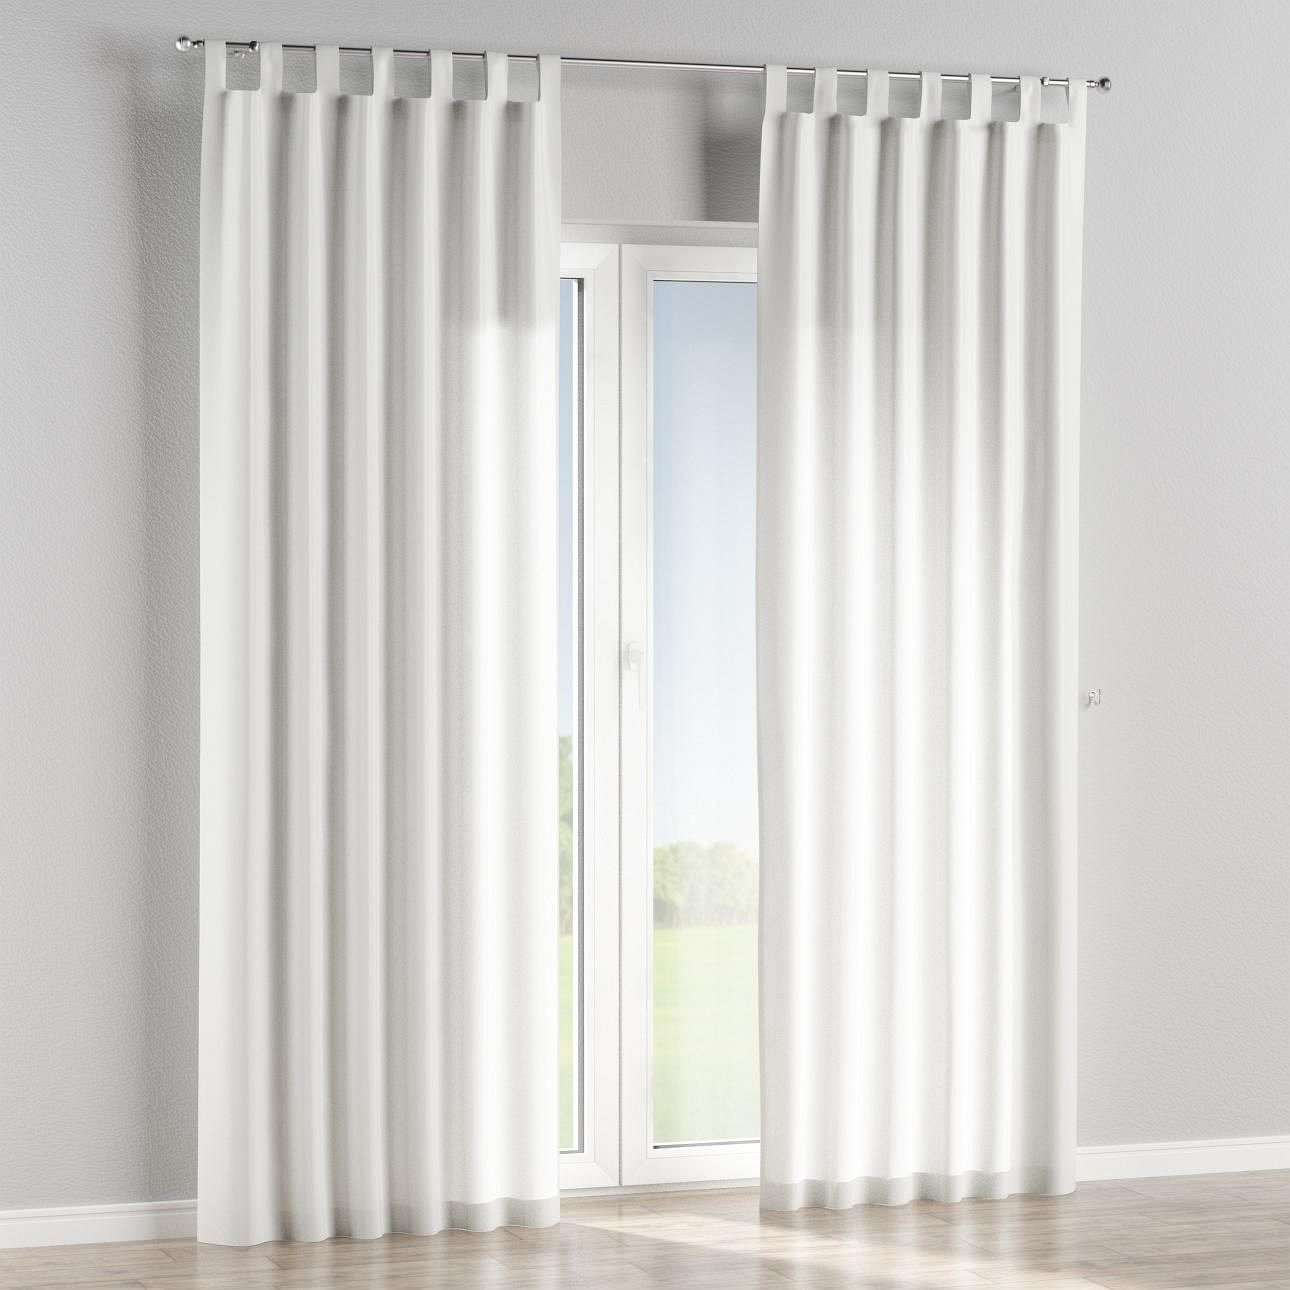 Tab top curtains in collection Rustica, fabric: 138-21